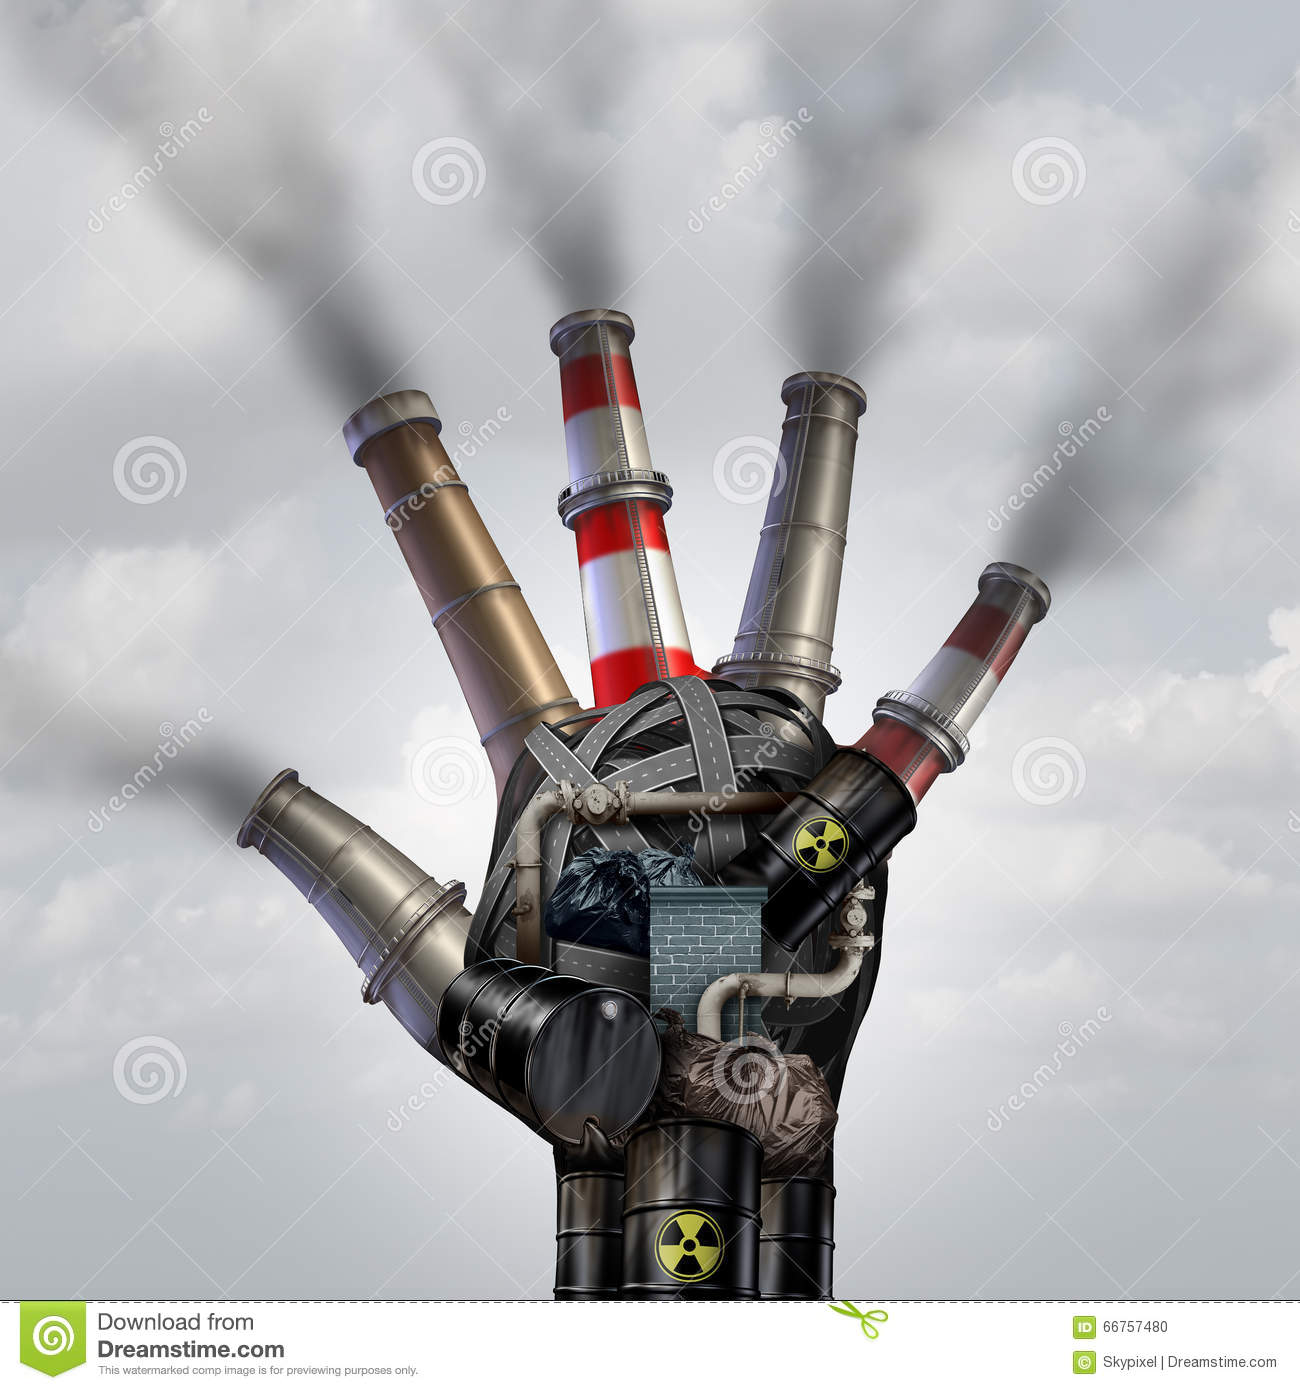 Man made pollution toxic smoke stop symbol as a dirty industrial